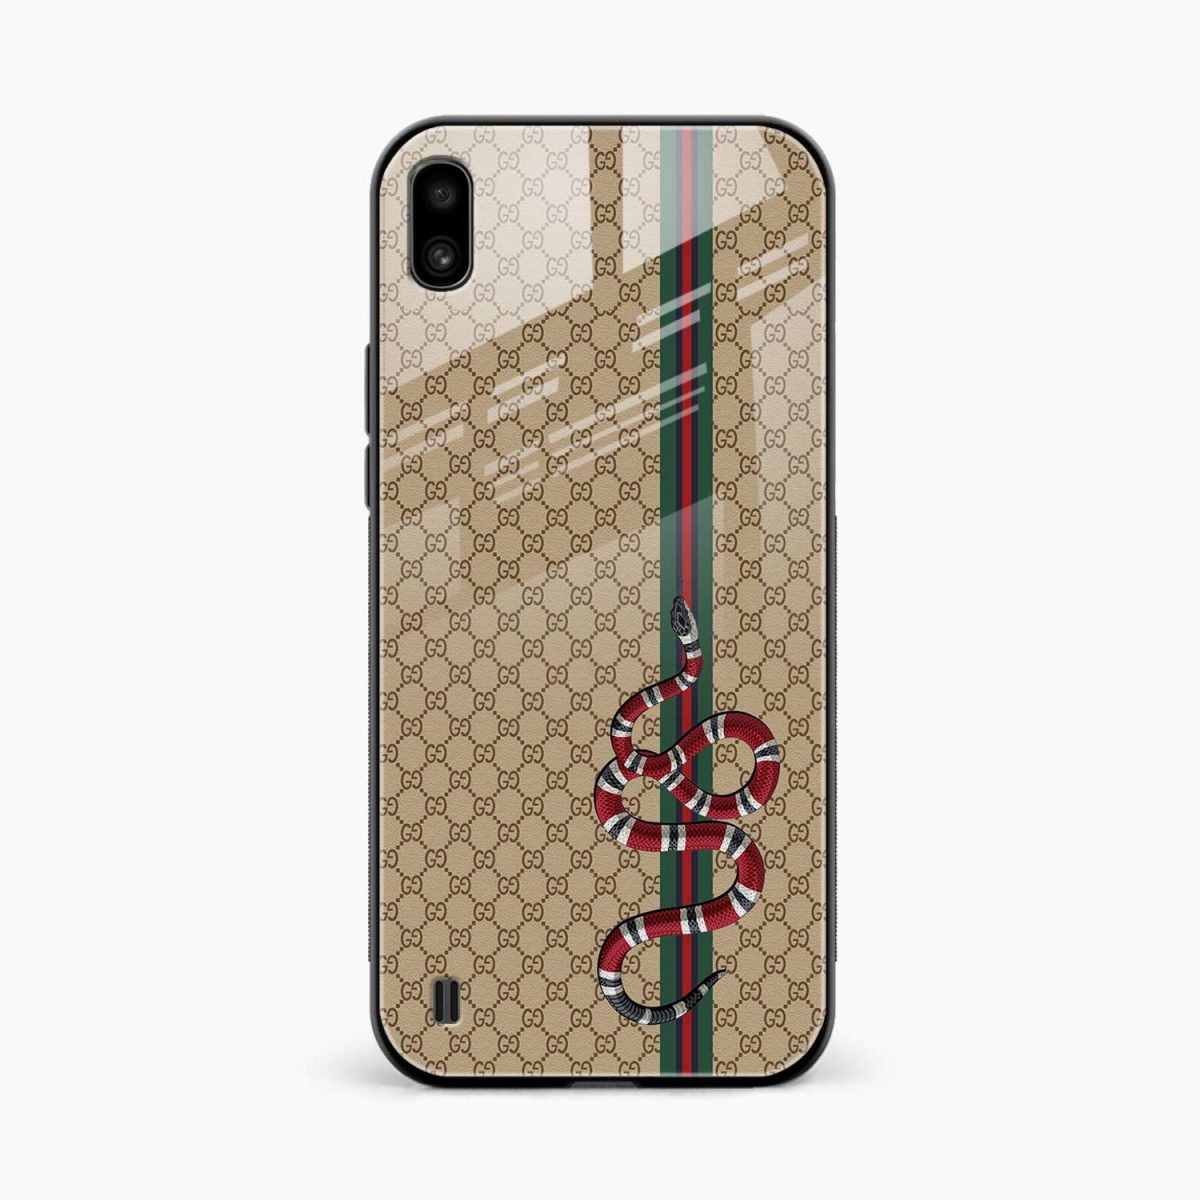 gucci snake pattern front view samsung galaxy a10 back cover